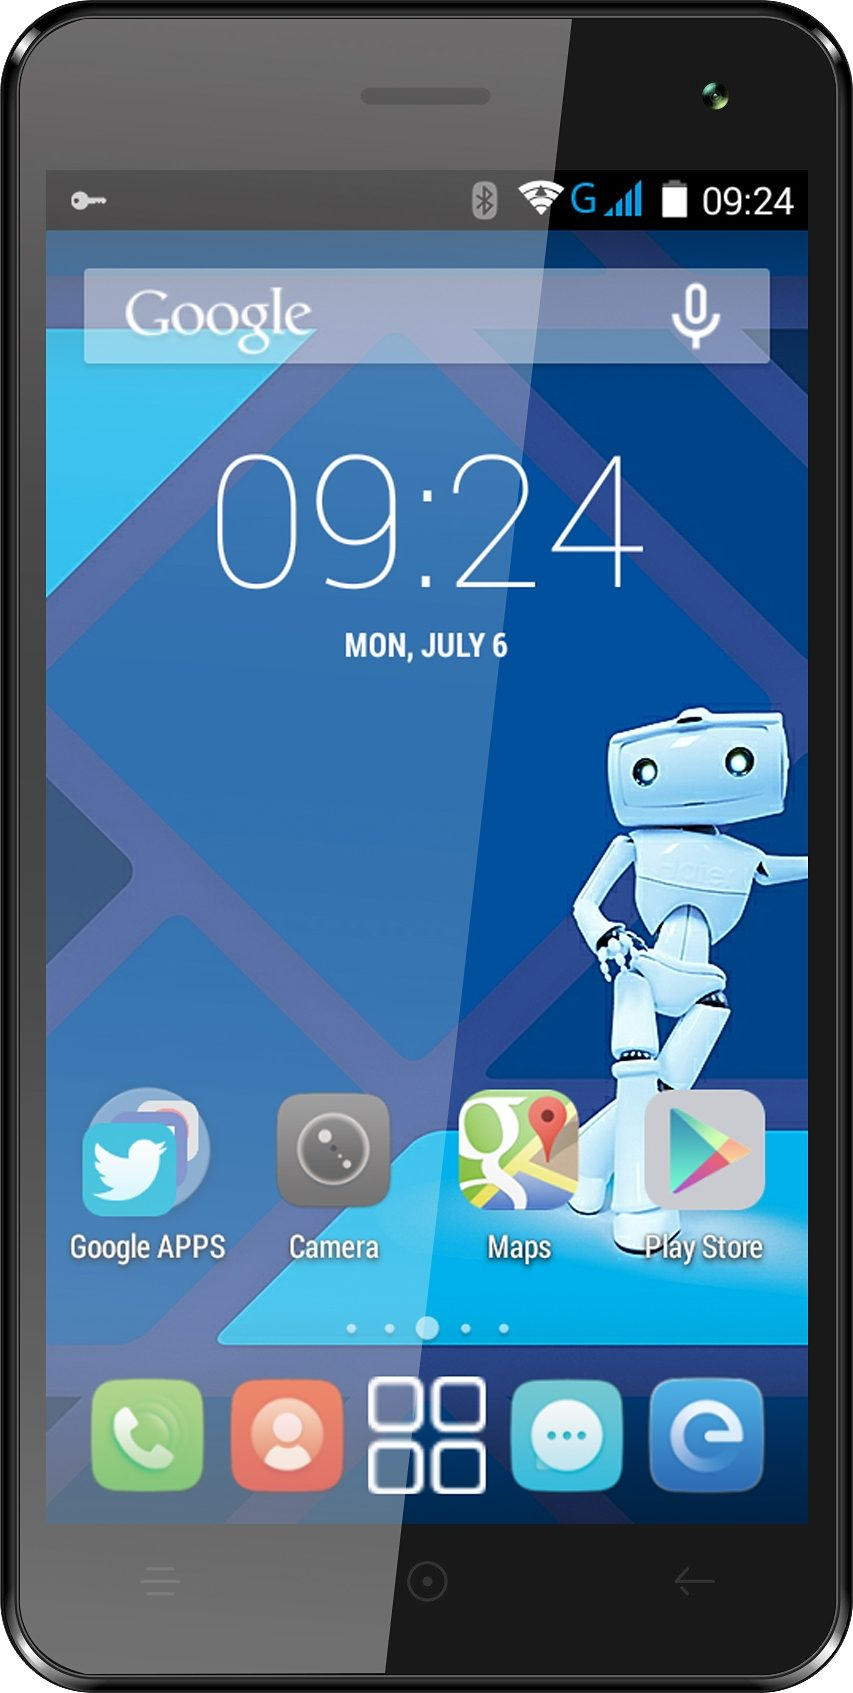 Haier Voyage G31 Smartphone, 12,7 cm (5 Zoll) Display, Android 4.4, 2,0 Megapixel